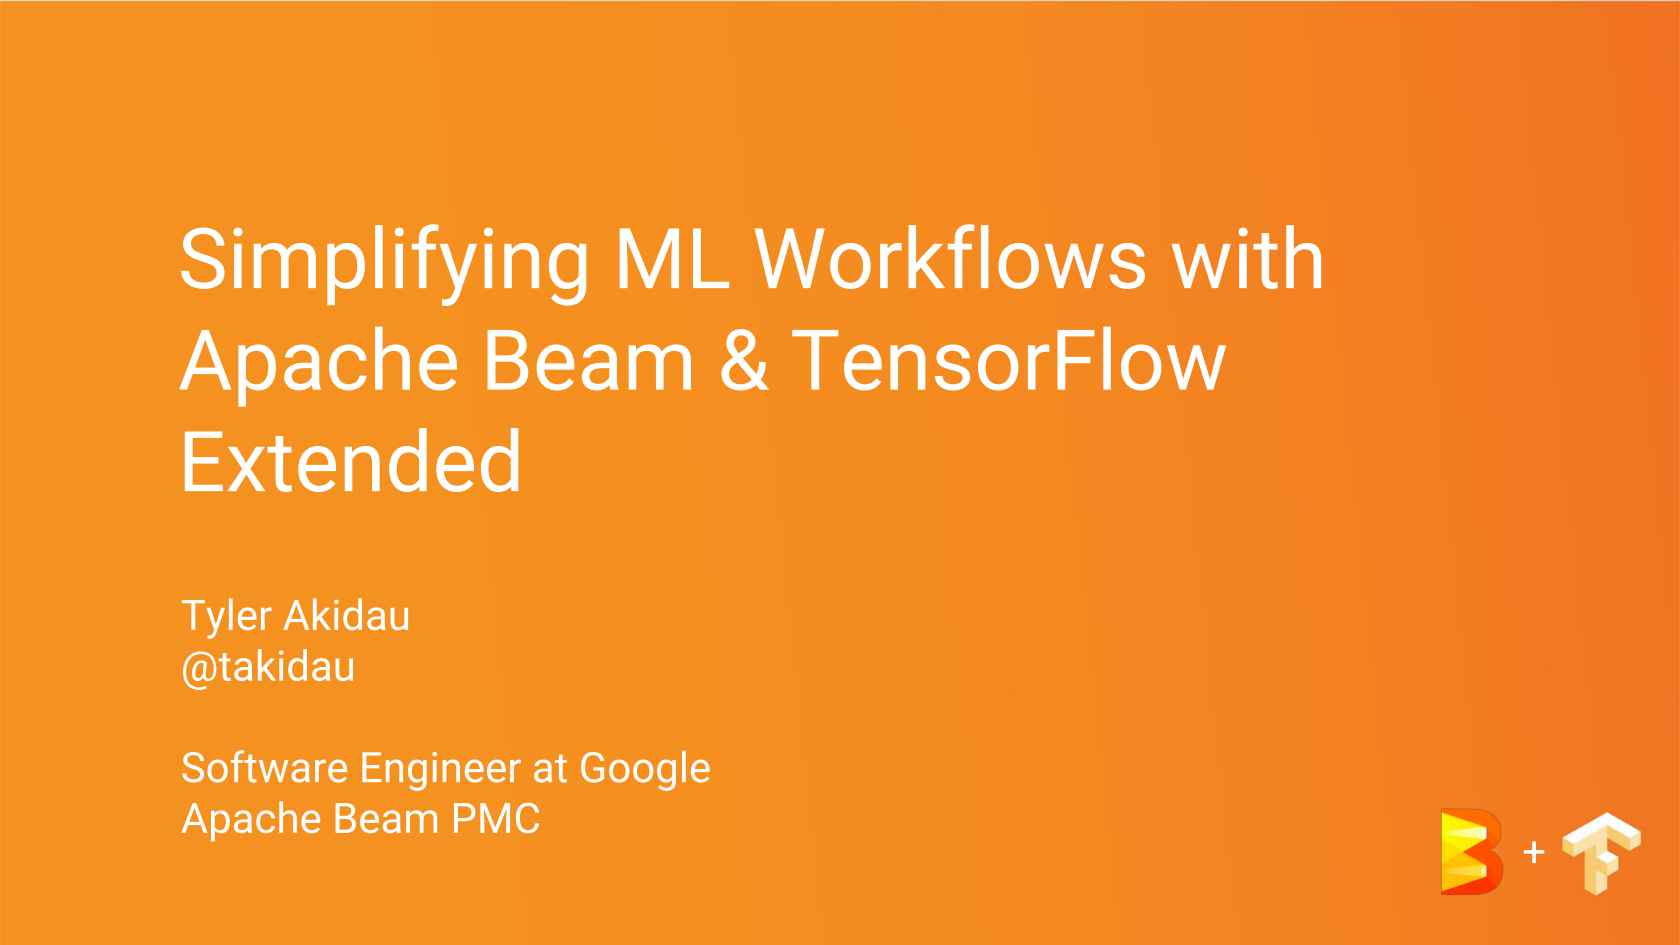 Simplifying ML Workflows with Apache Beam